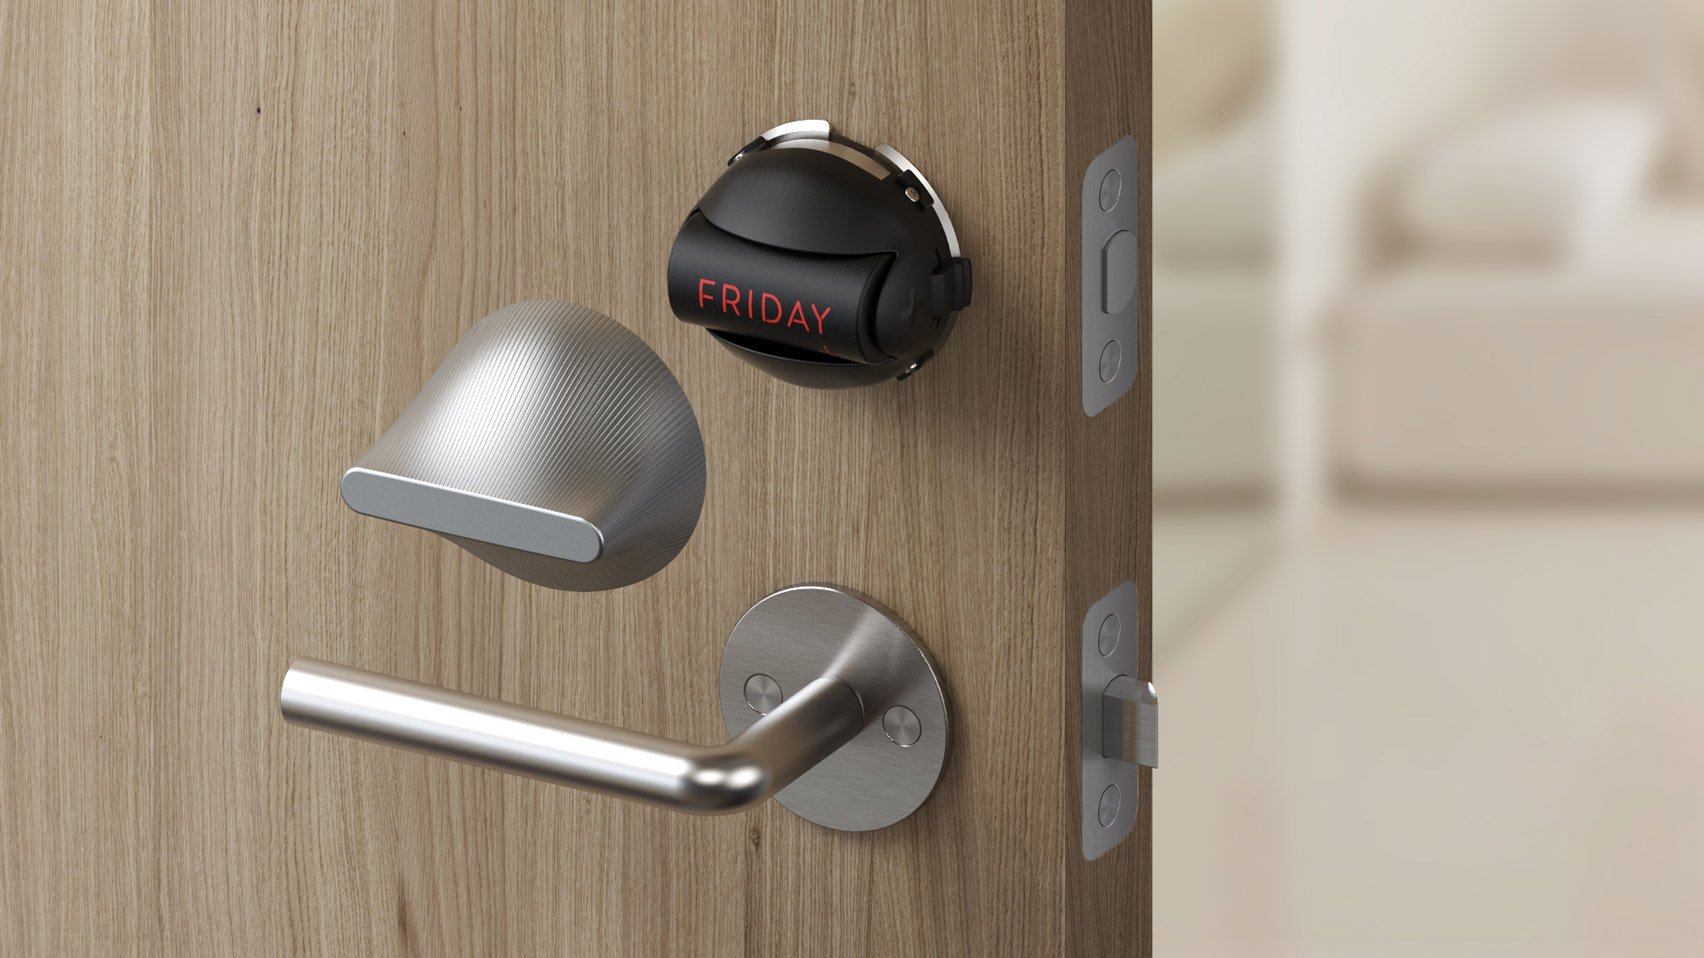 Big S Friday Smart Lock Is Its Smallest Ever Product